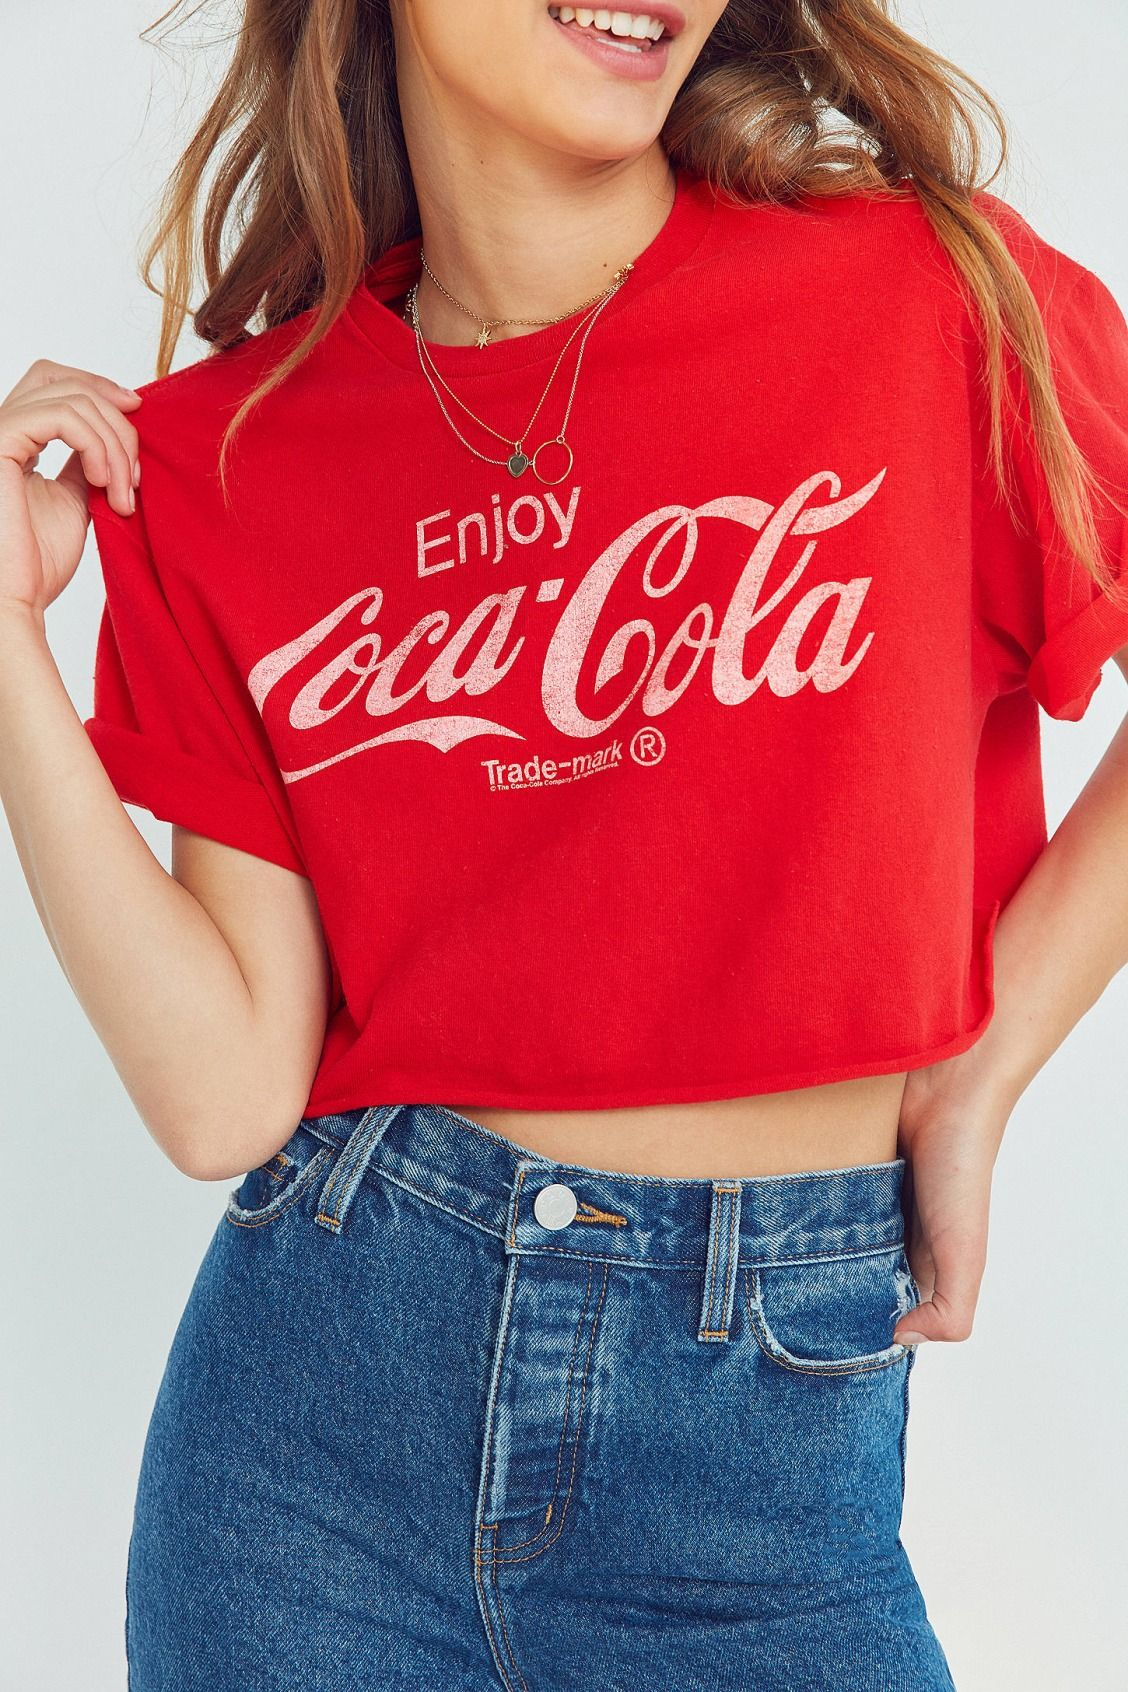 c919be647b36f Slide View  1  Junk Food Coca-Cola Cropped Tee